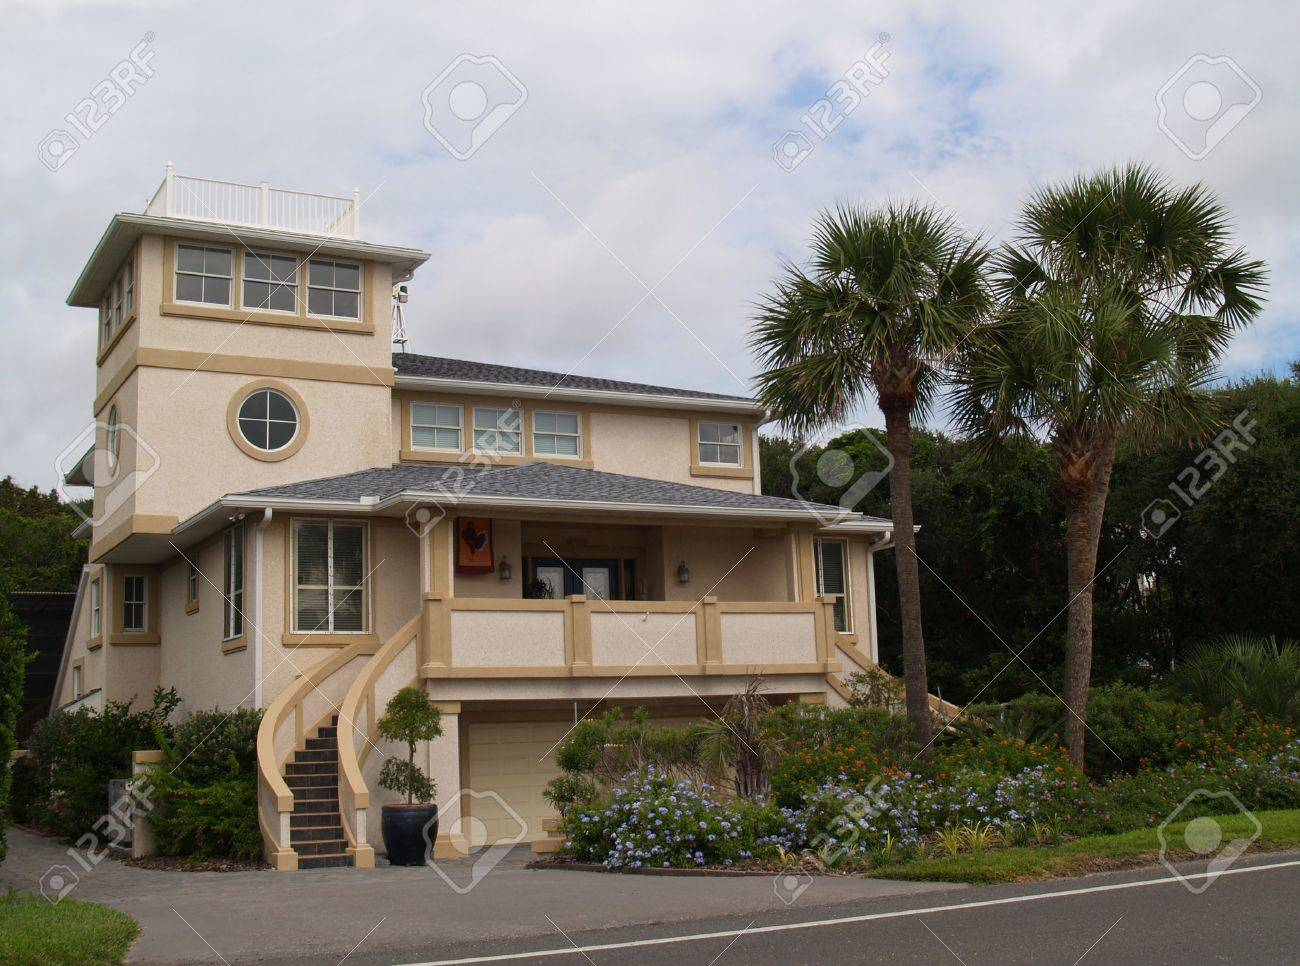 Three story beach house found in Florida. Stock Photo - 5520091